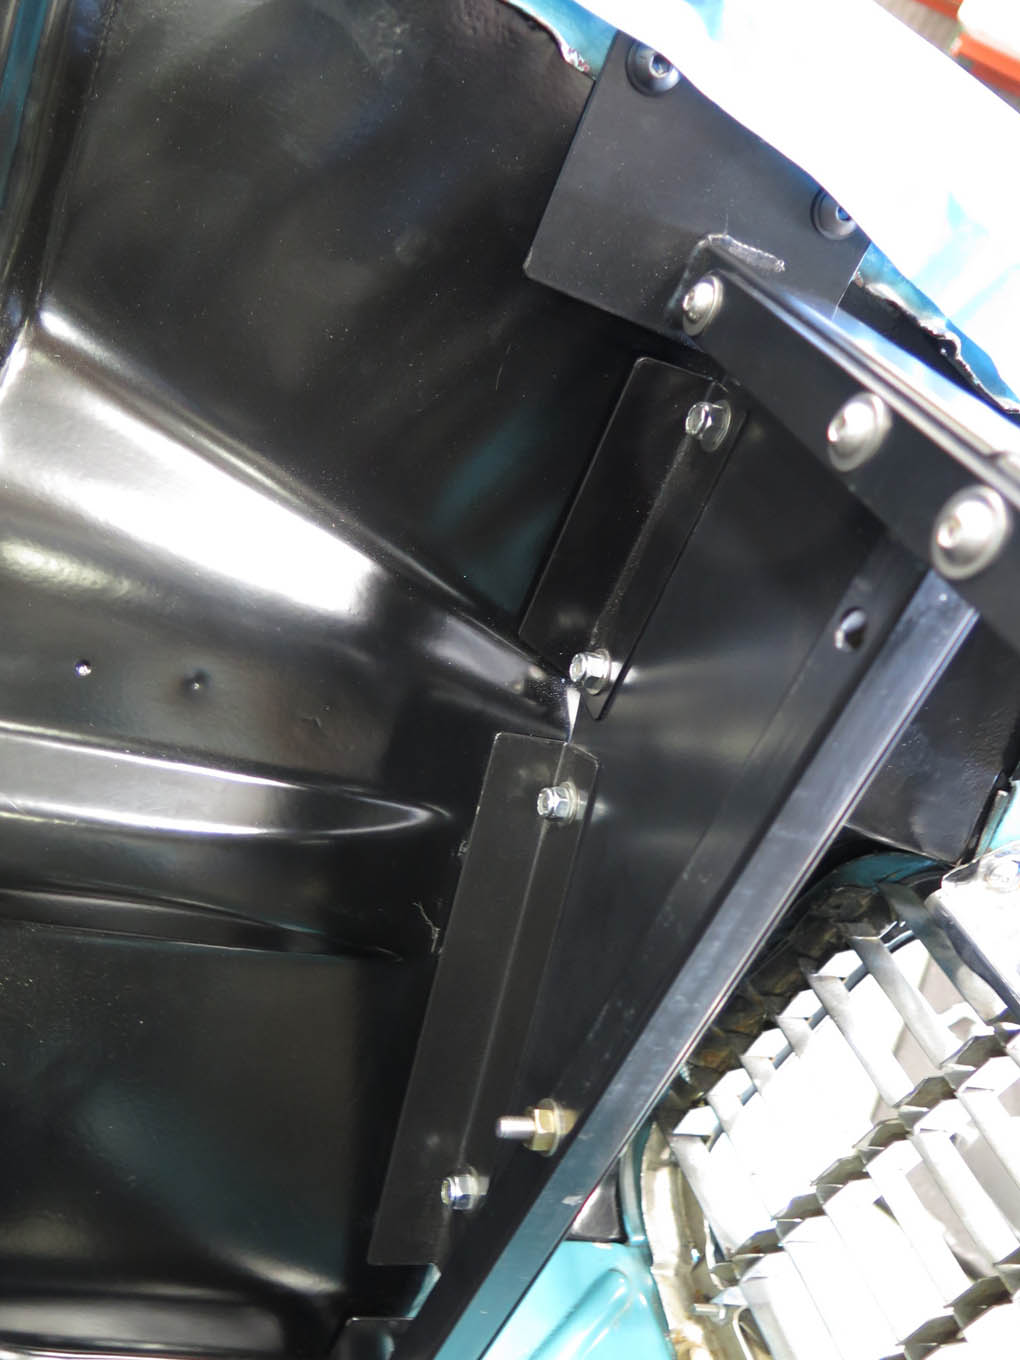 The series of sheetmetal flanges on each side of the core support are not pre-drilled; align inner fender panels as needed (maintaining consistent fender-to-body gaps).